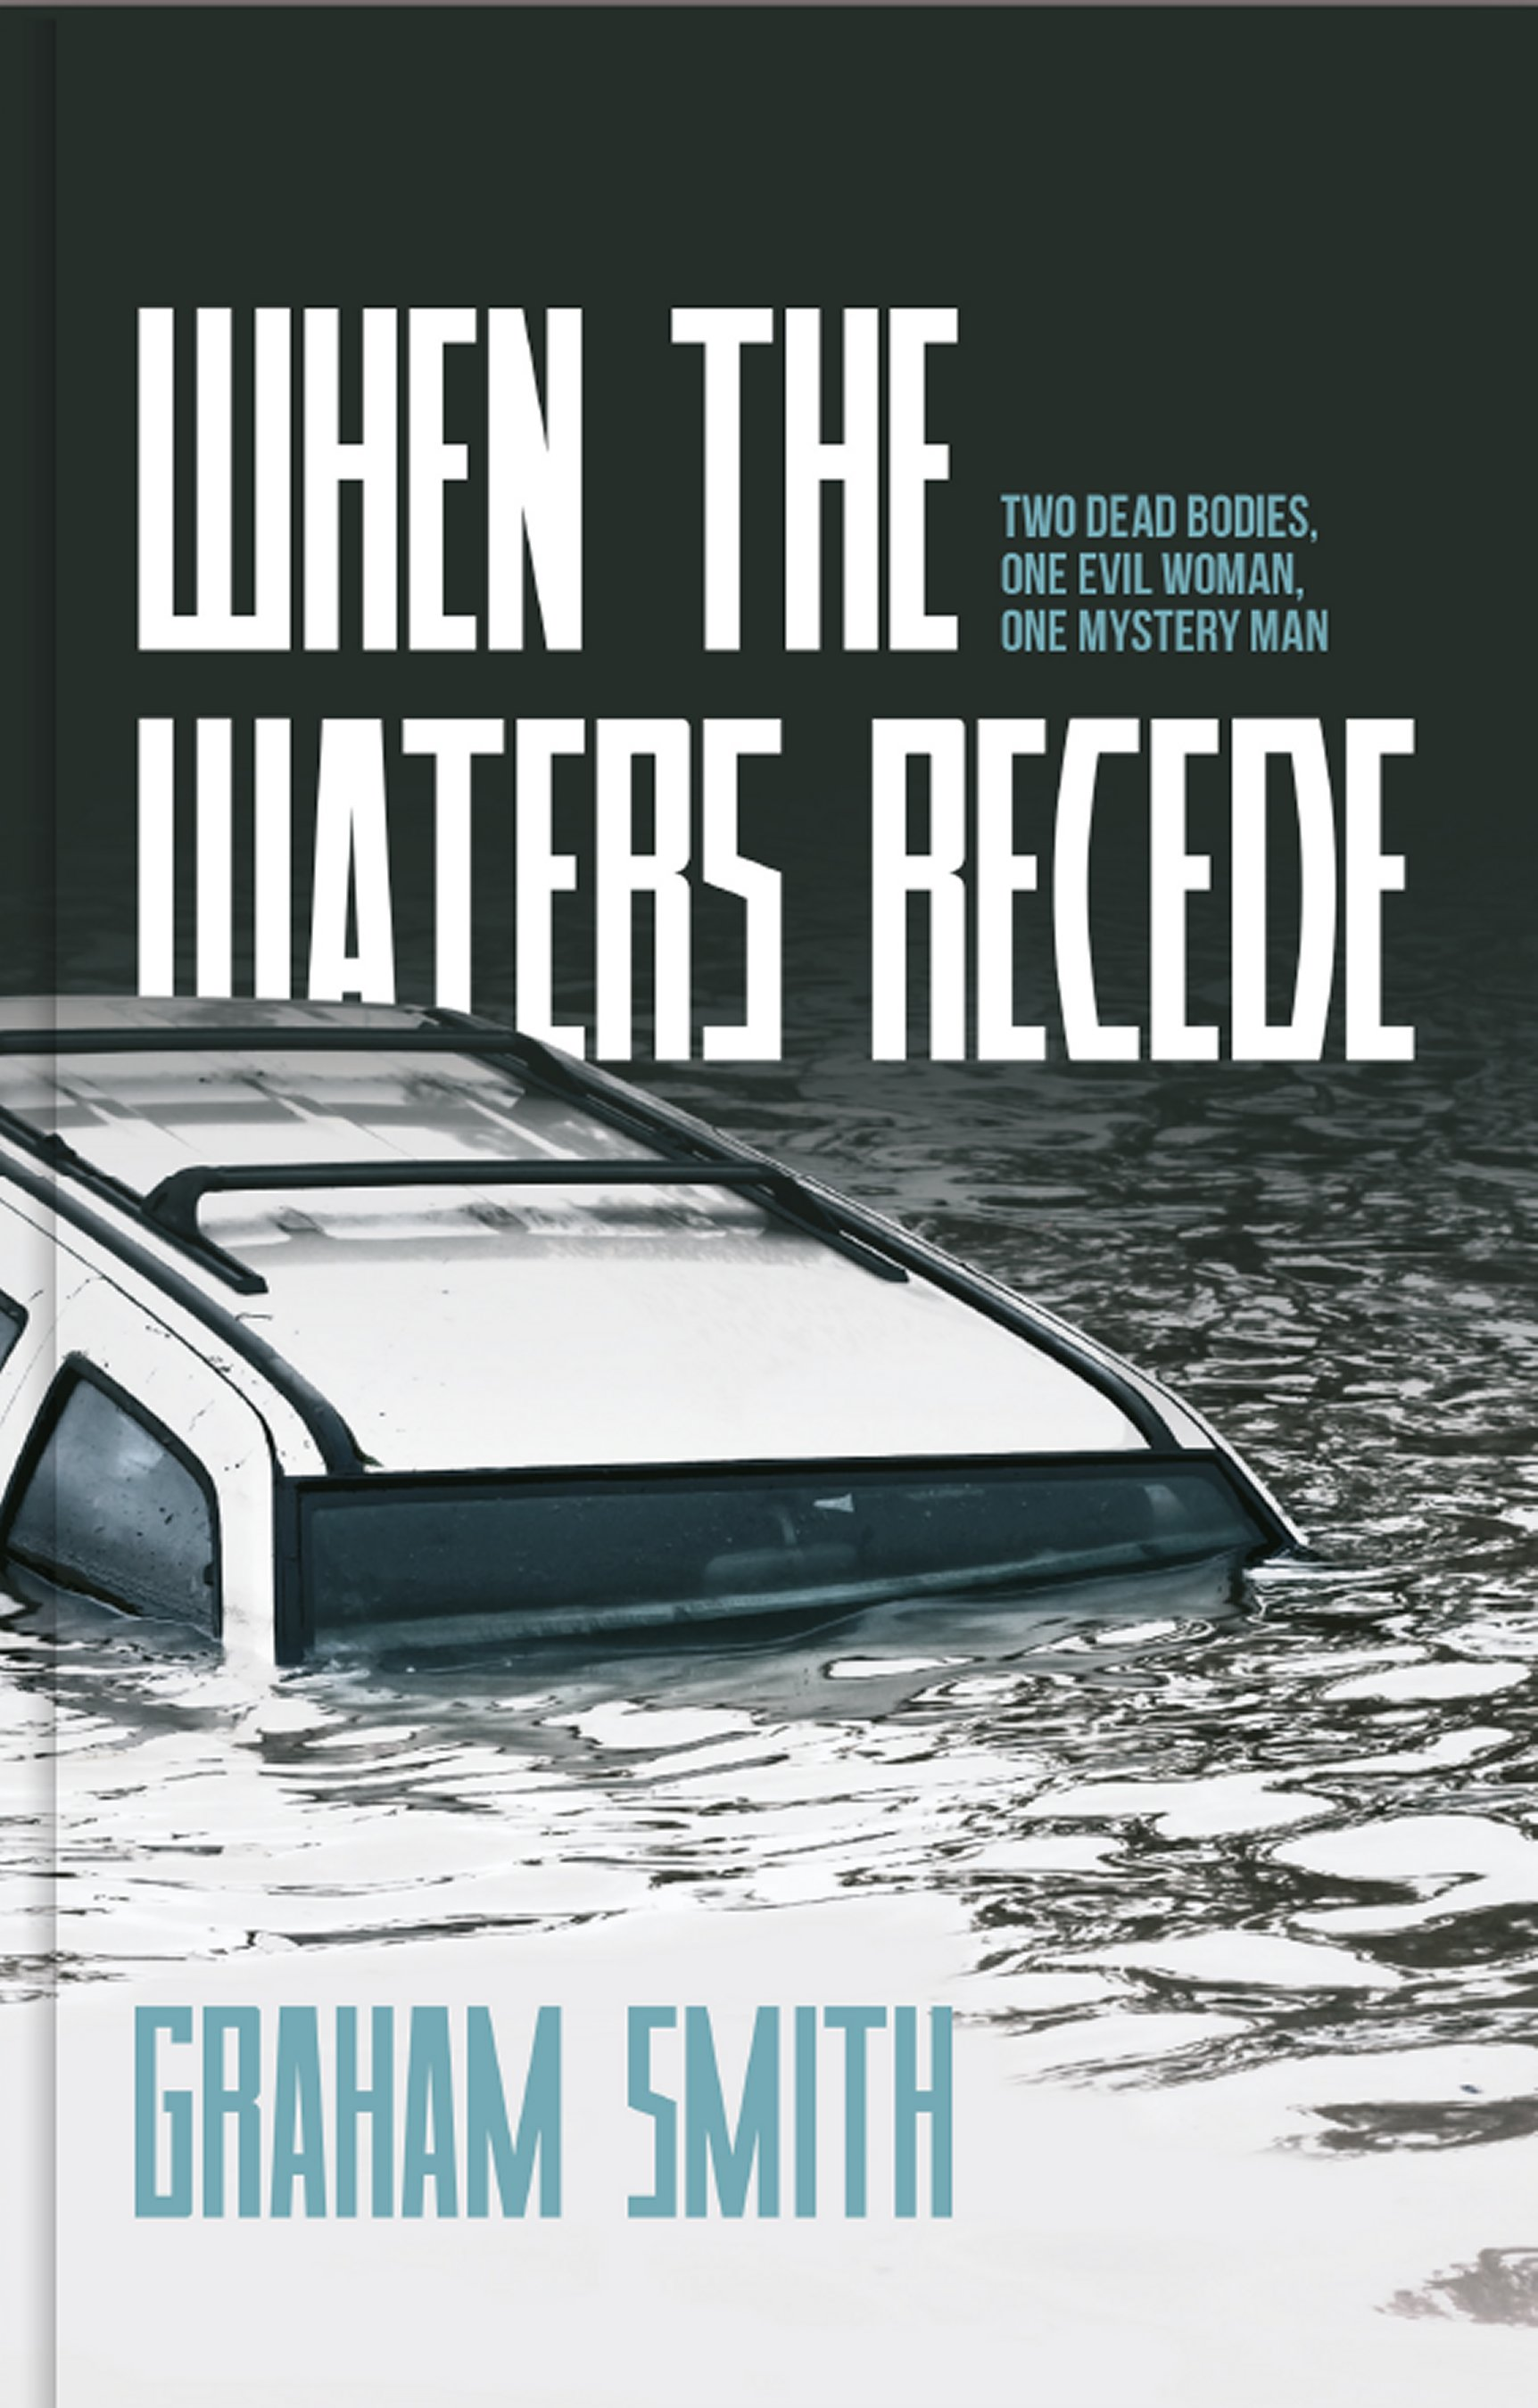 When Waters Recede Cover.jpg